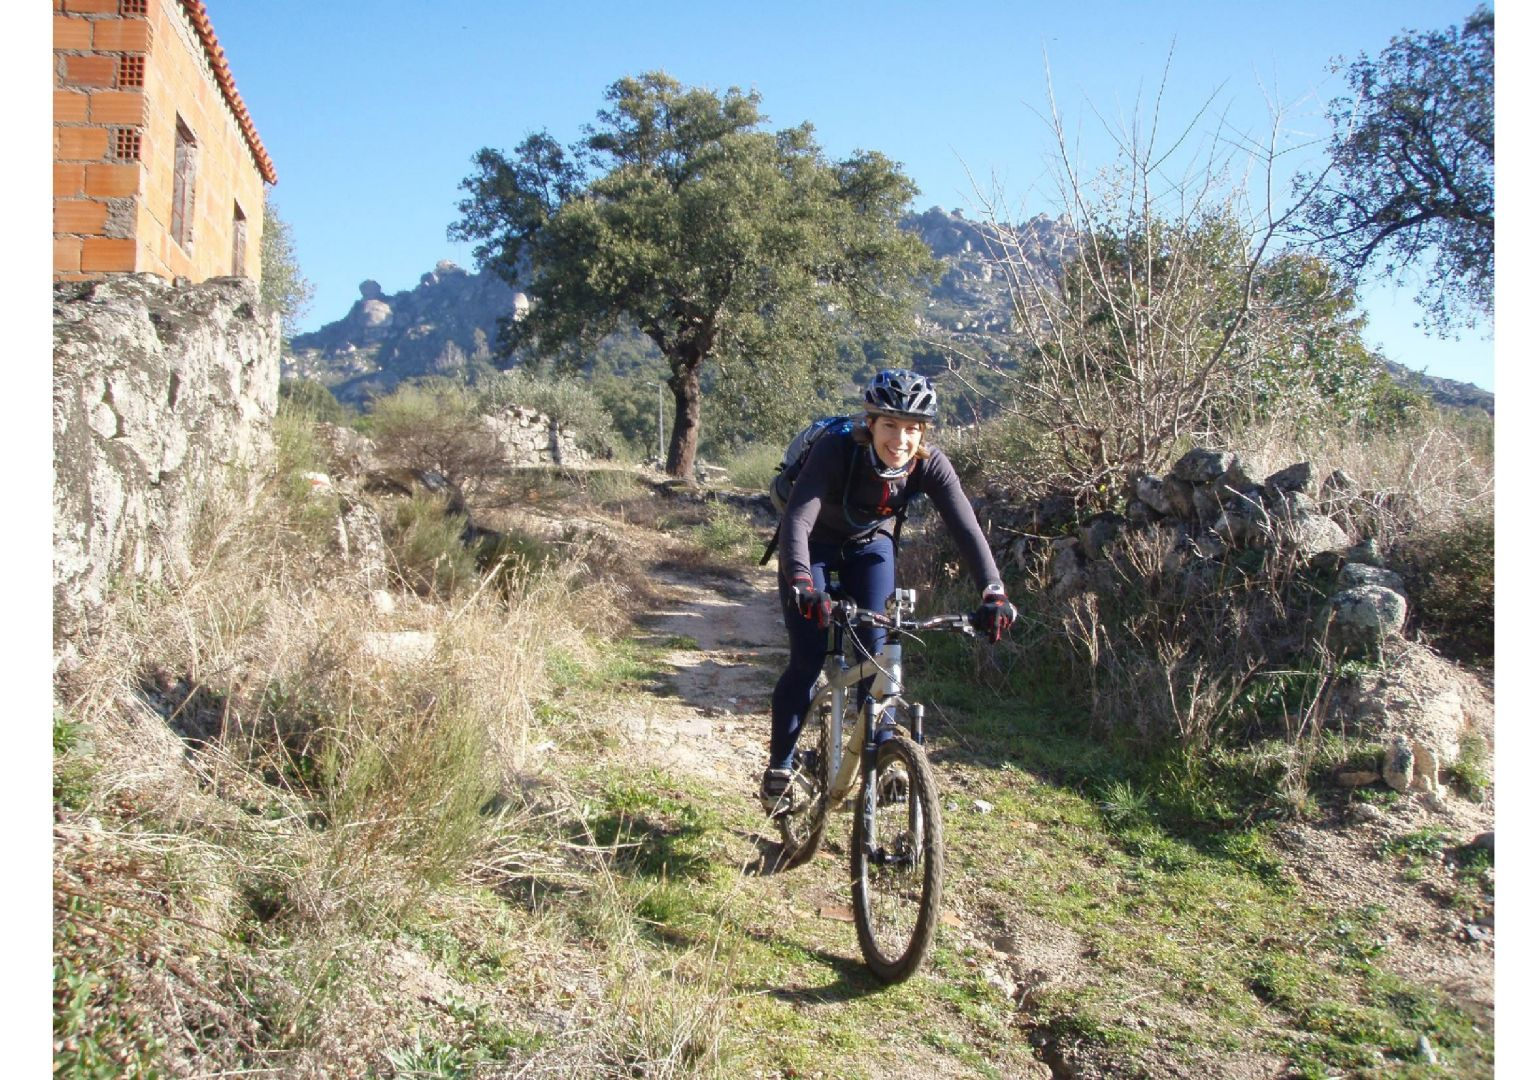 Tour Photos27.jpg - Portugal - Roman Trails - Guided Mountain Bike Holiday - Mountain Biking